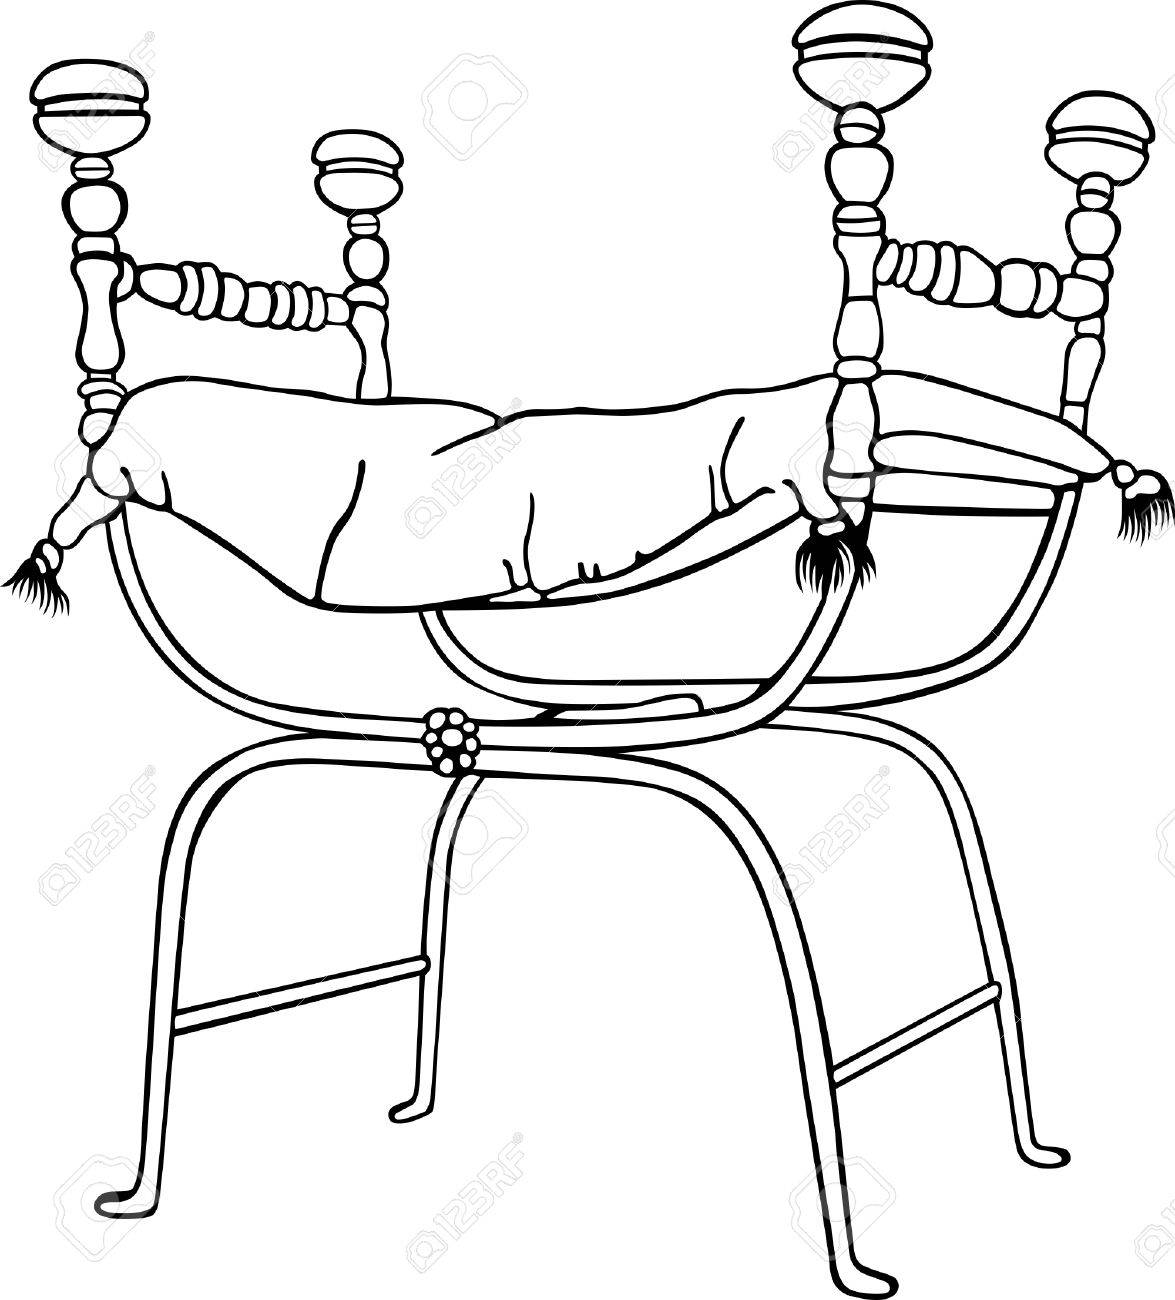 Antique chair drawing - Antique Chair Without Back With A Pillow And Four Knobs Stock Vector 10285878